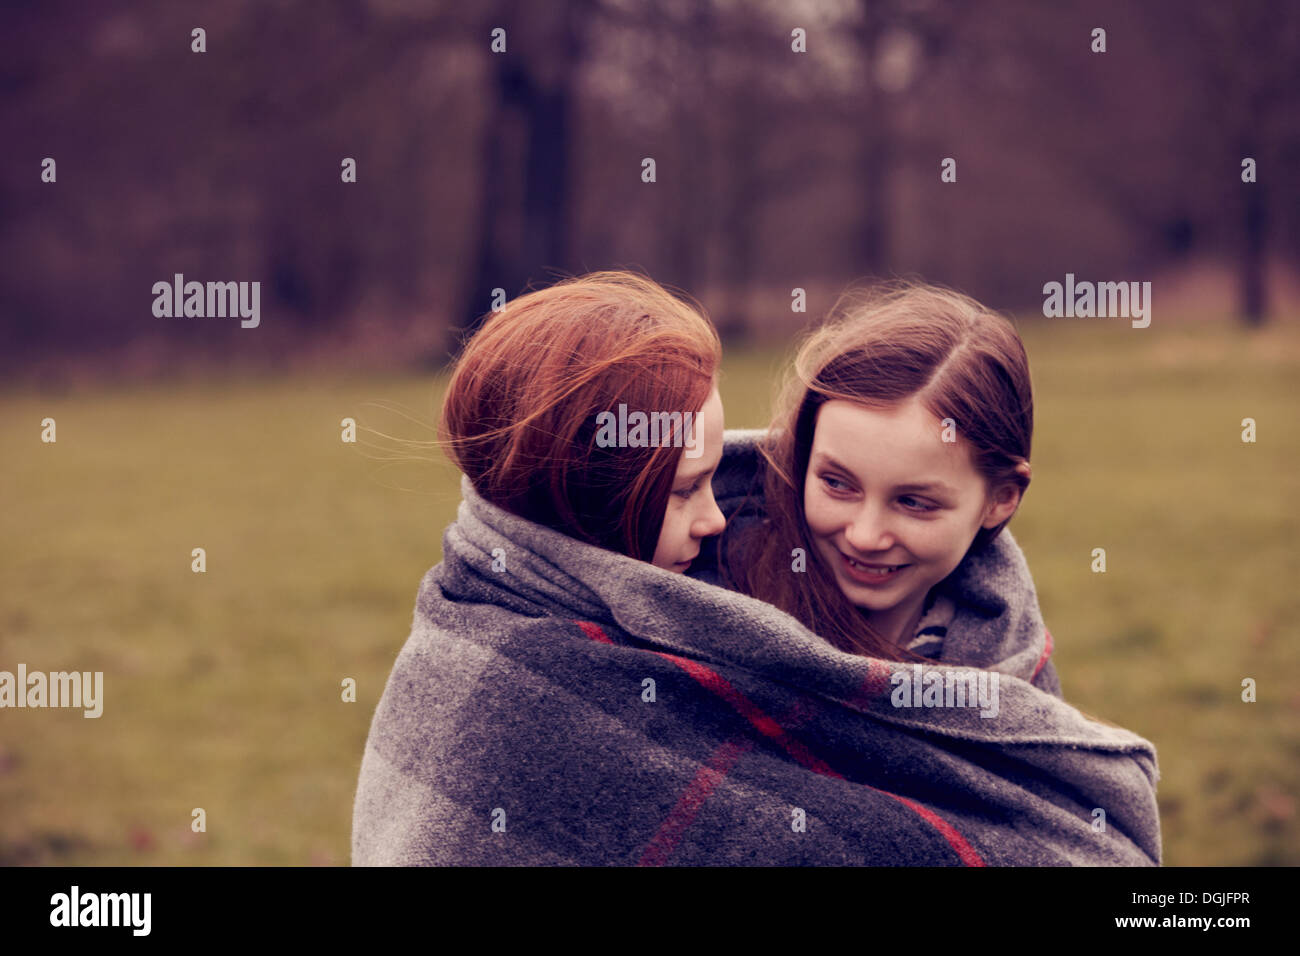 Girls wrapped in a blanket outdoors, smiling - Stock Image